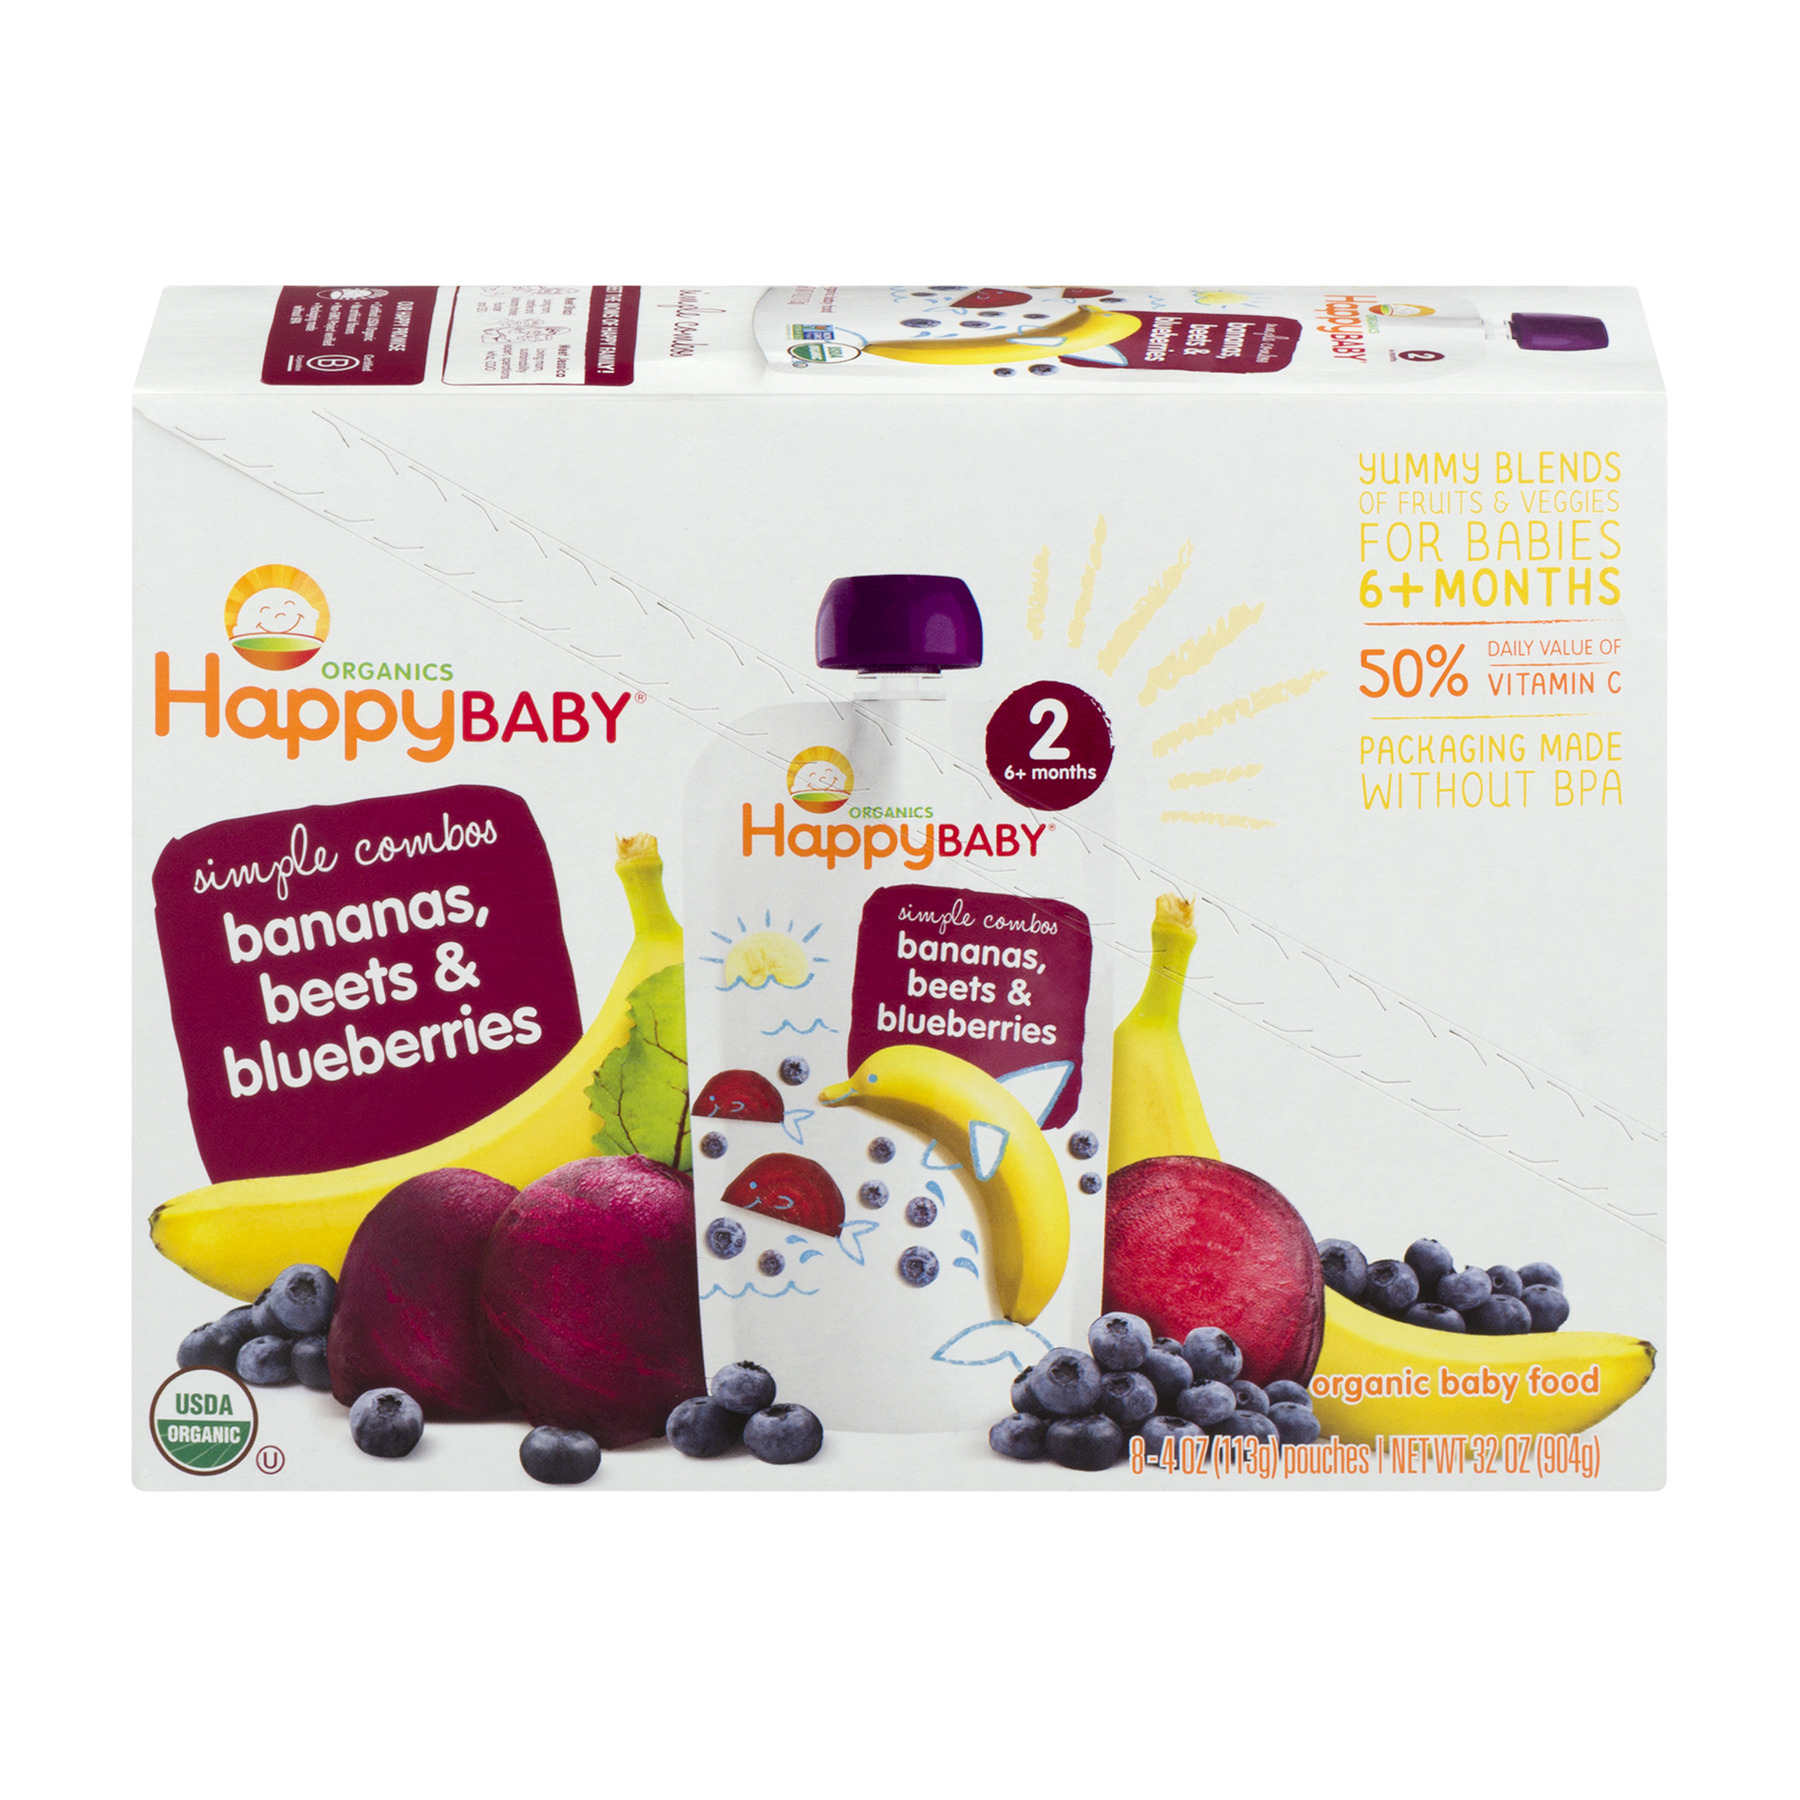 Happy Baby® Simple Combos Bananas, Beets & Blueberries Organic Baby Food 8- 4oz. Pouches